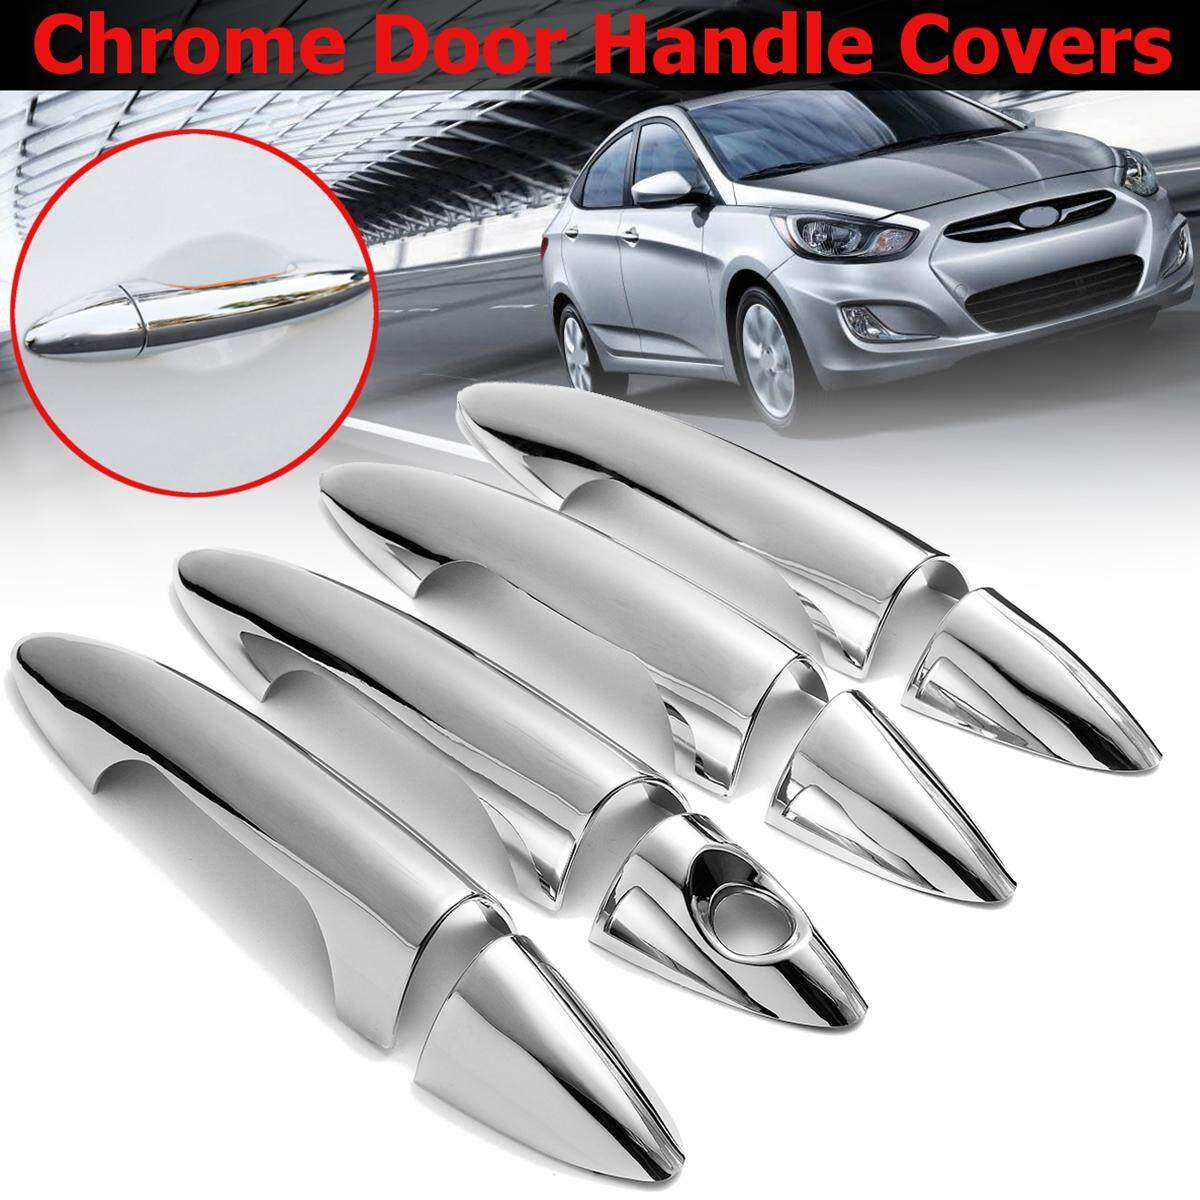 8pcs Abs Chrome 4 Door Handle Covers For Accent Solaris Dodge Attitude Cover Raiser Stang Universal Silver